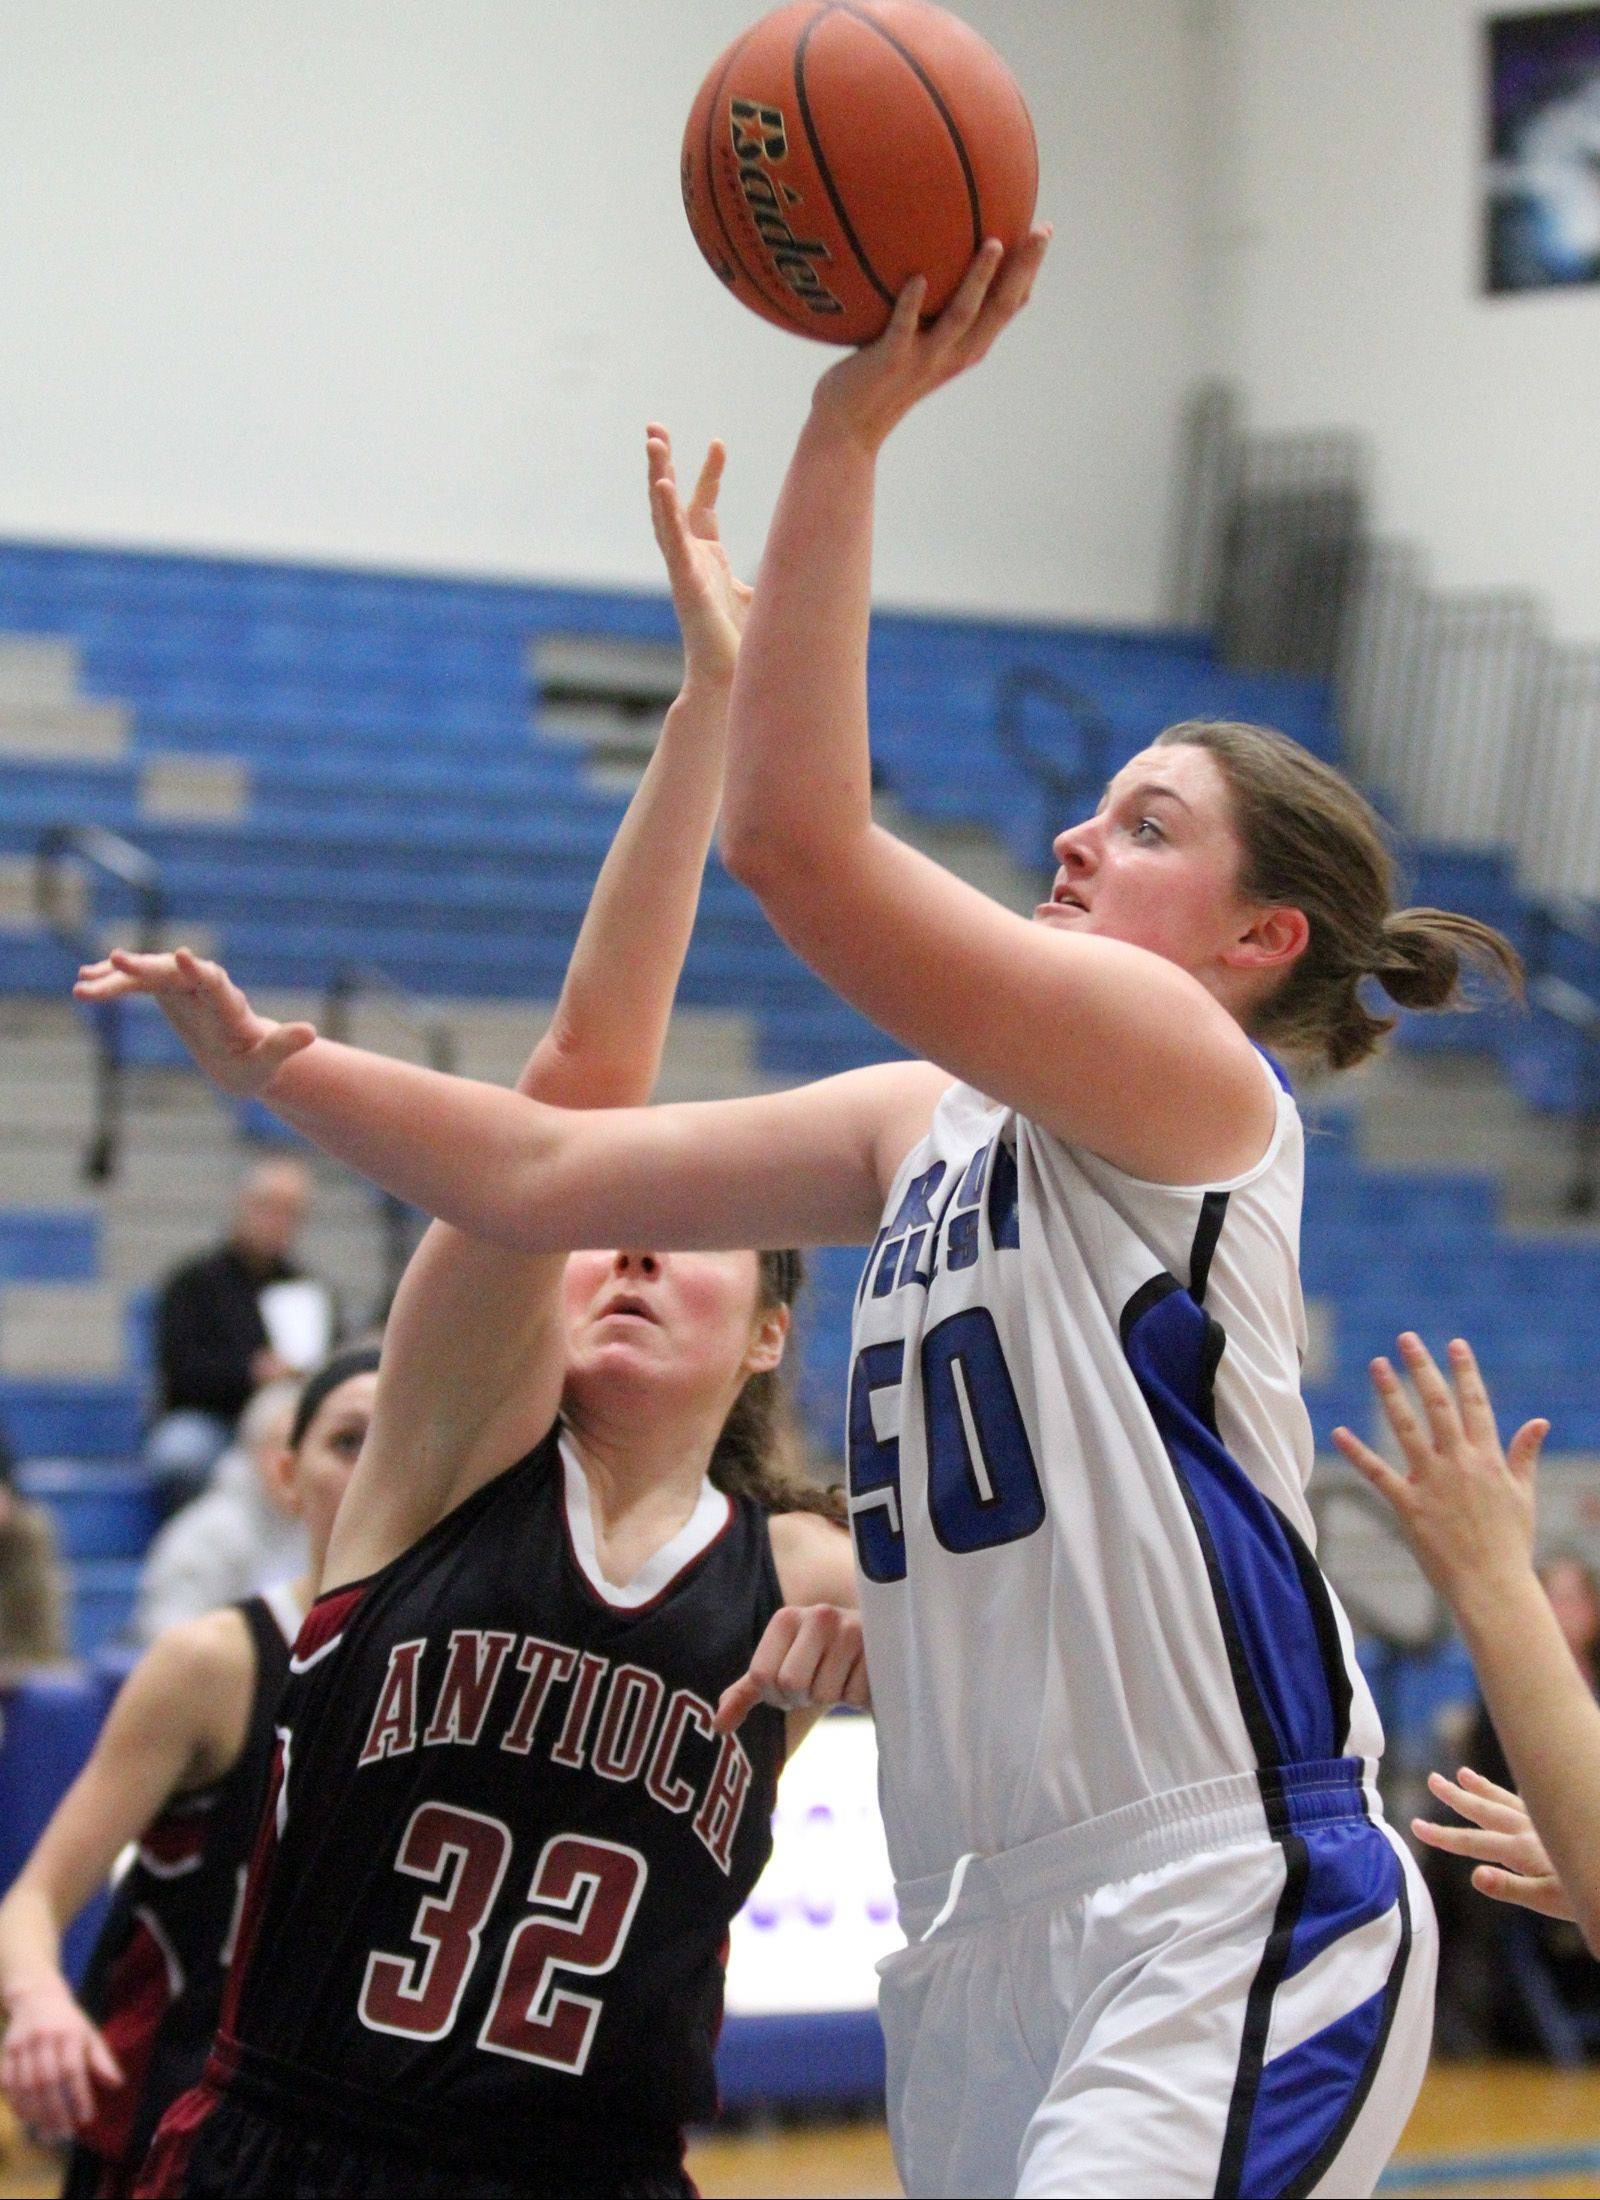 Take a look: Smith, Vernon Hills still unbeaten